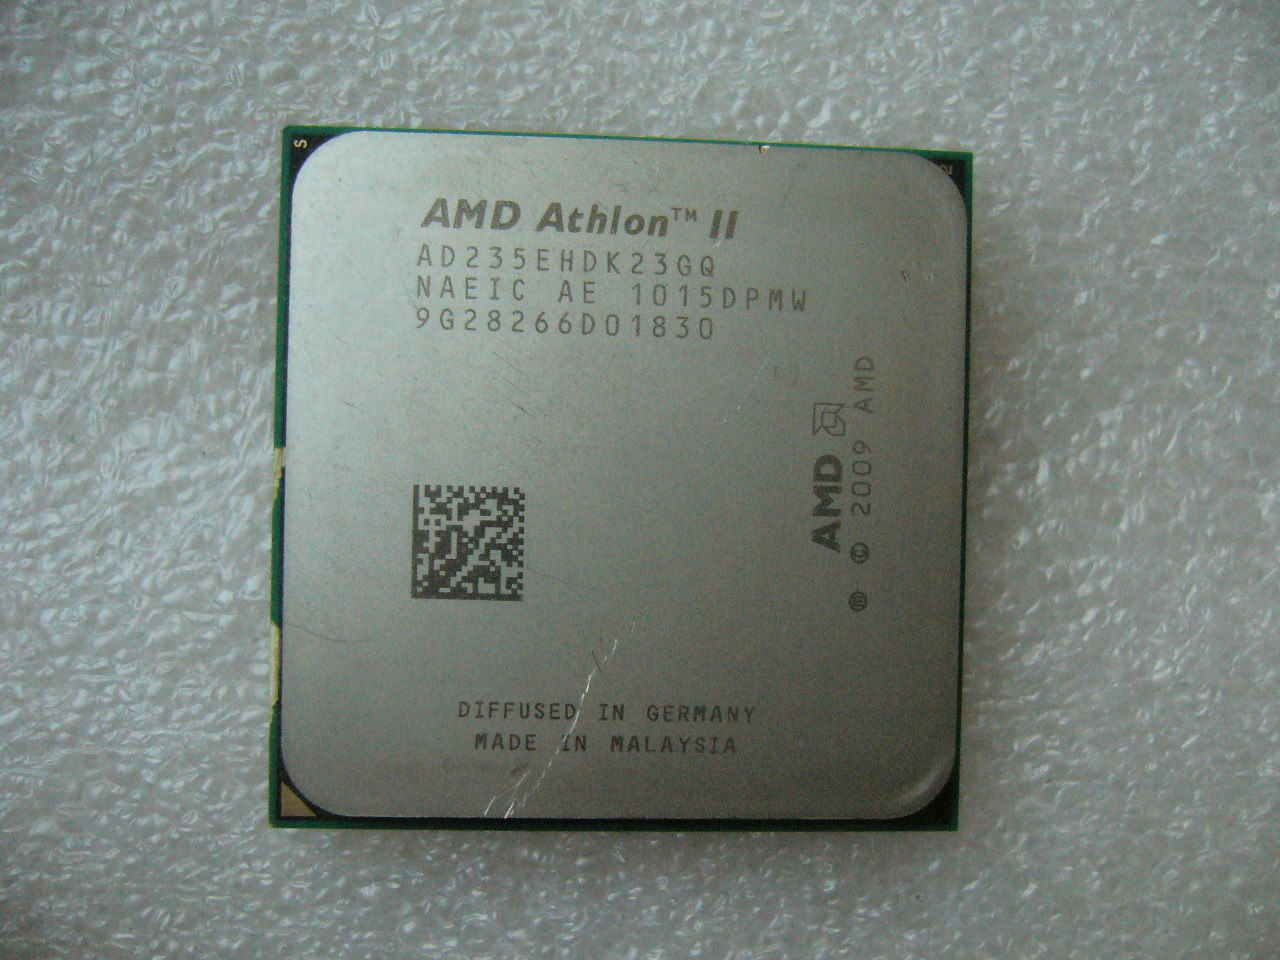 QTY 1x AMD Athlon II X2 235e 2.7 GHz Dual-Core (AD235EHDK23GQ) CPU AM3 45W